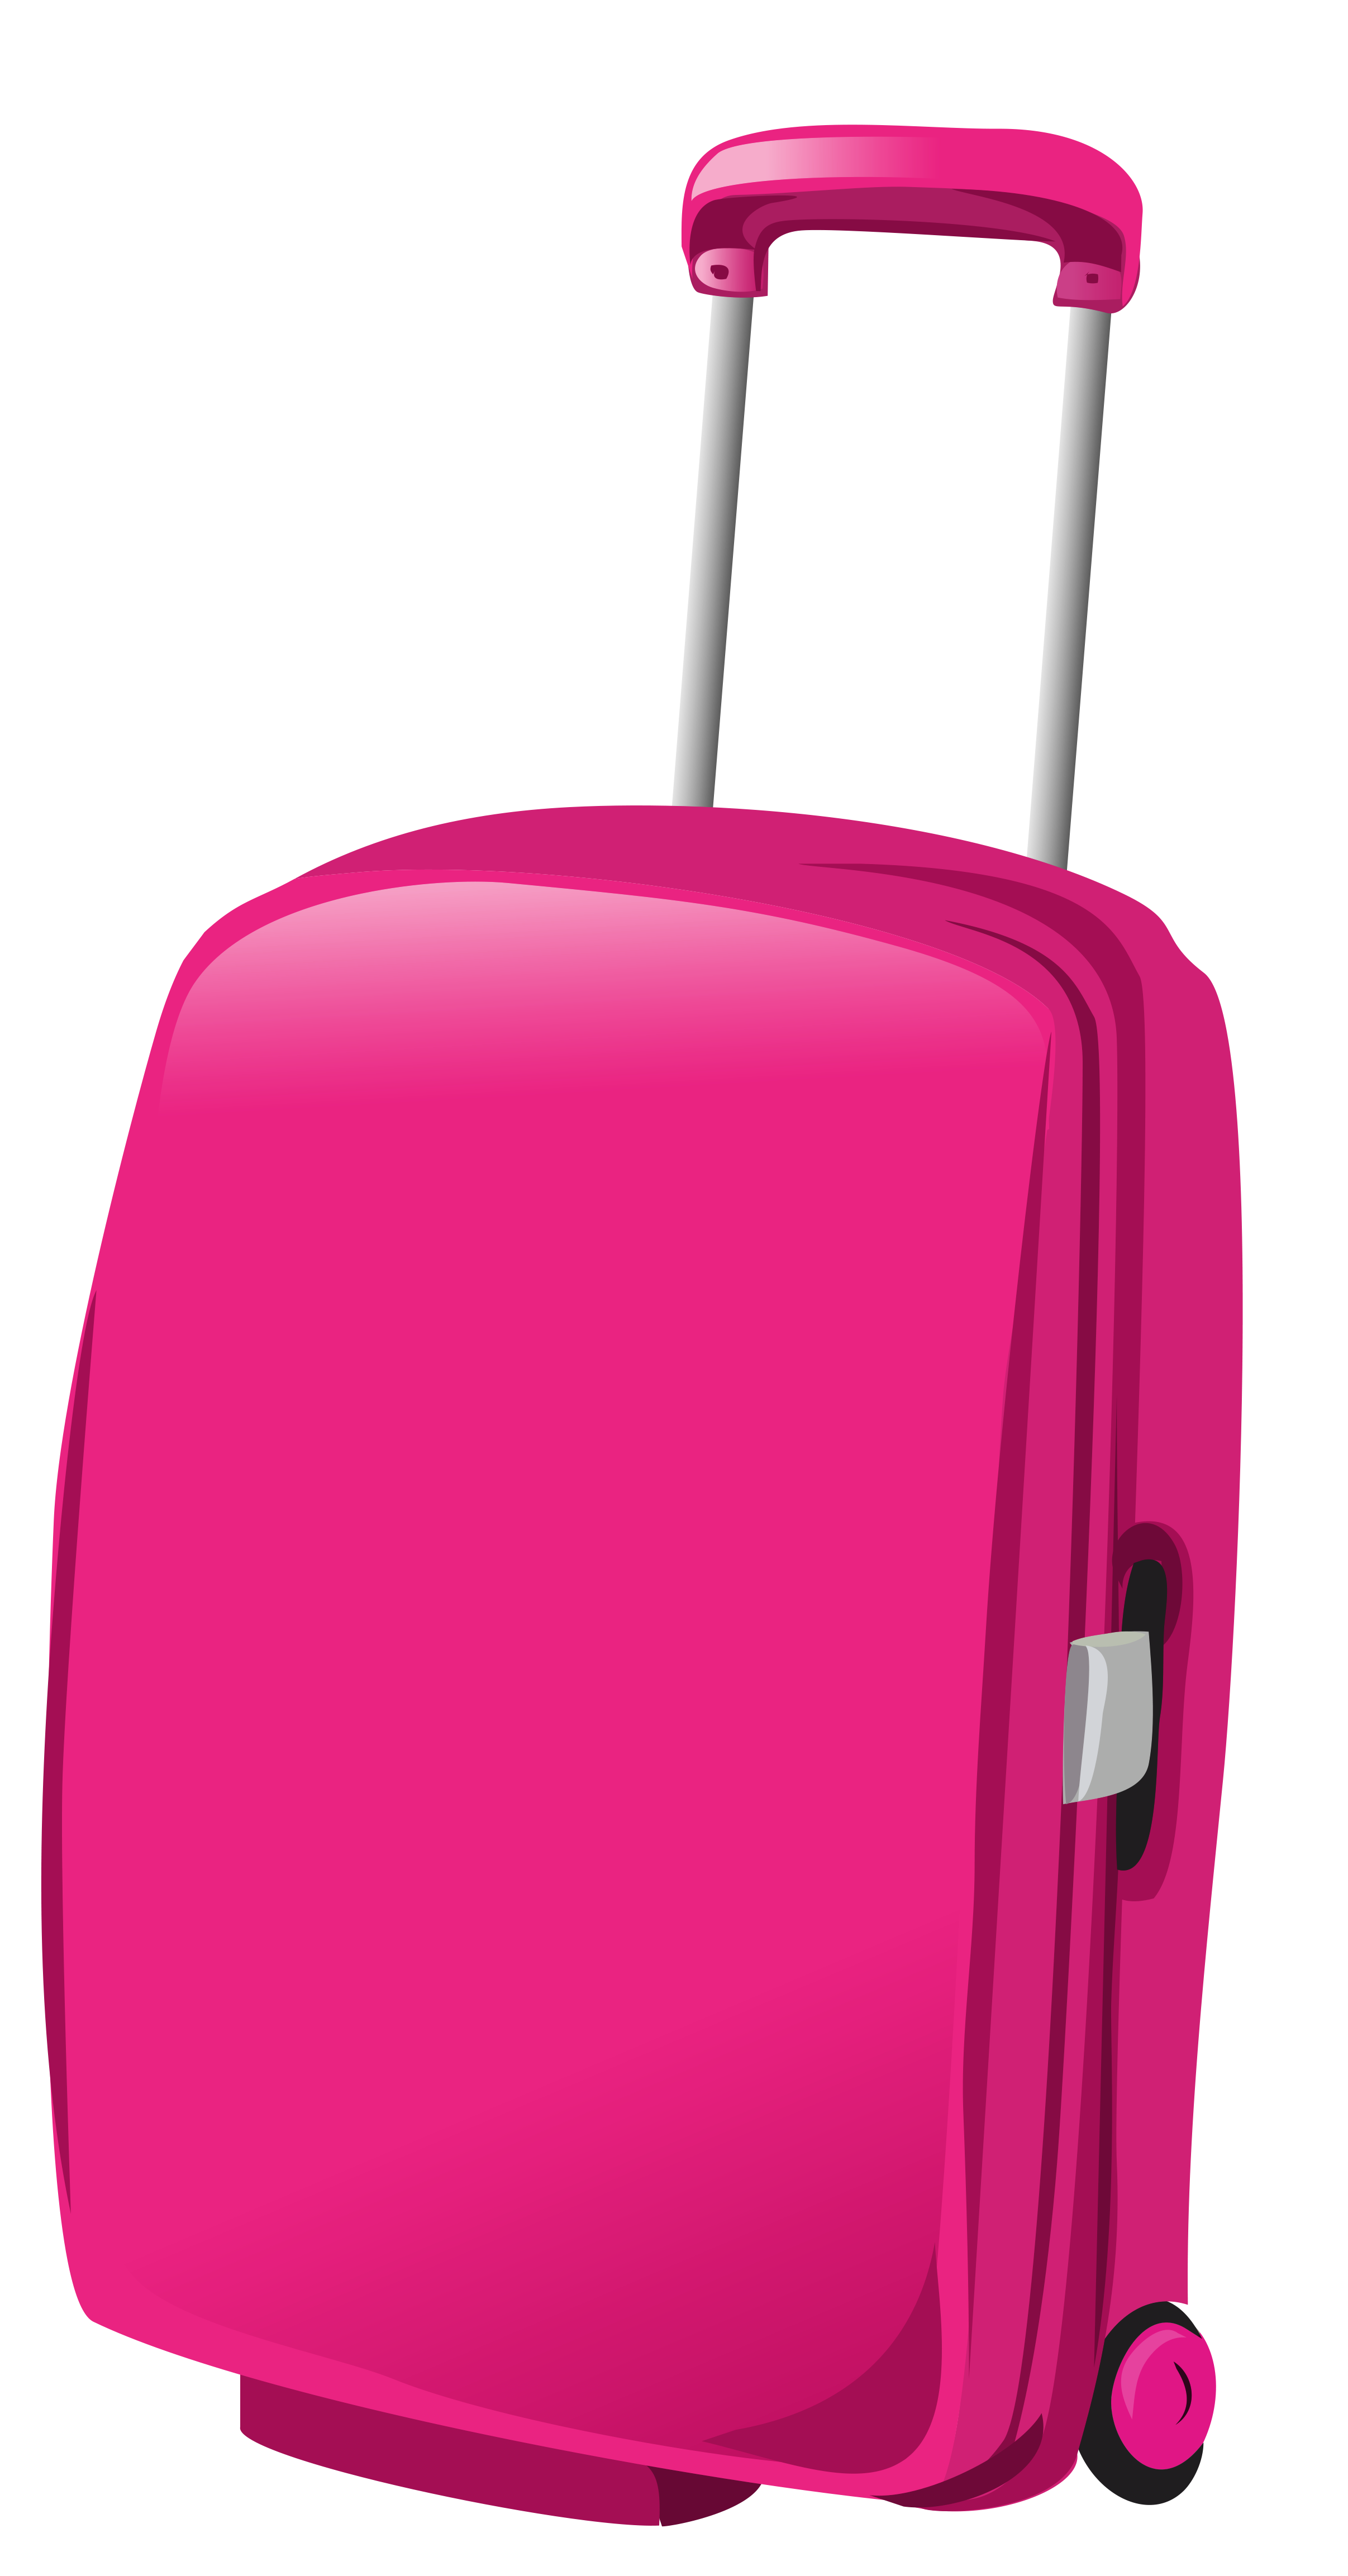 Pink png picture gallery. Bag clipart travel